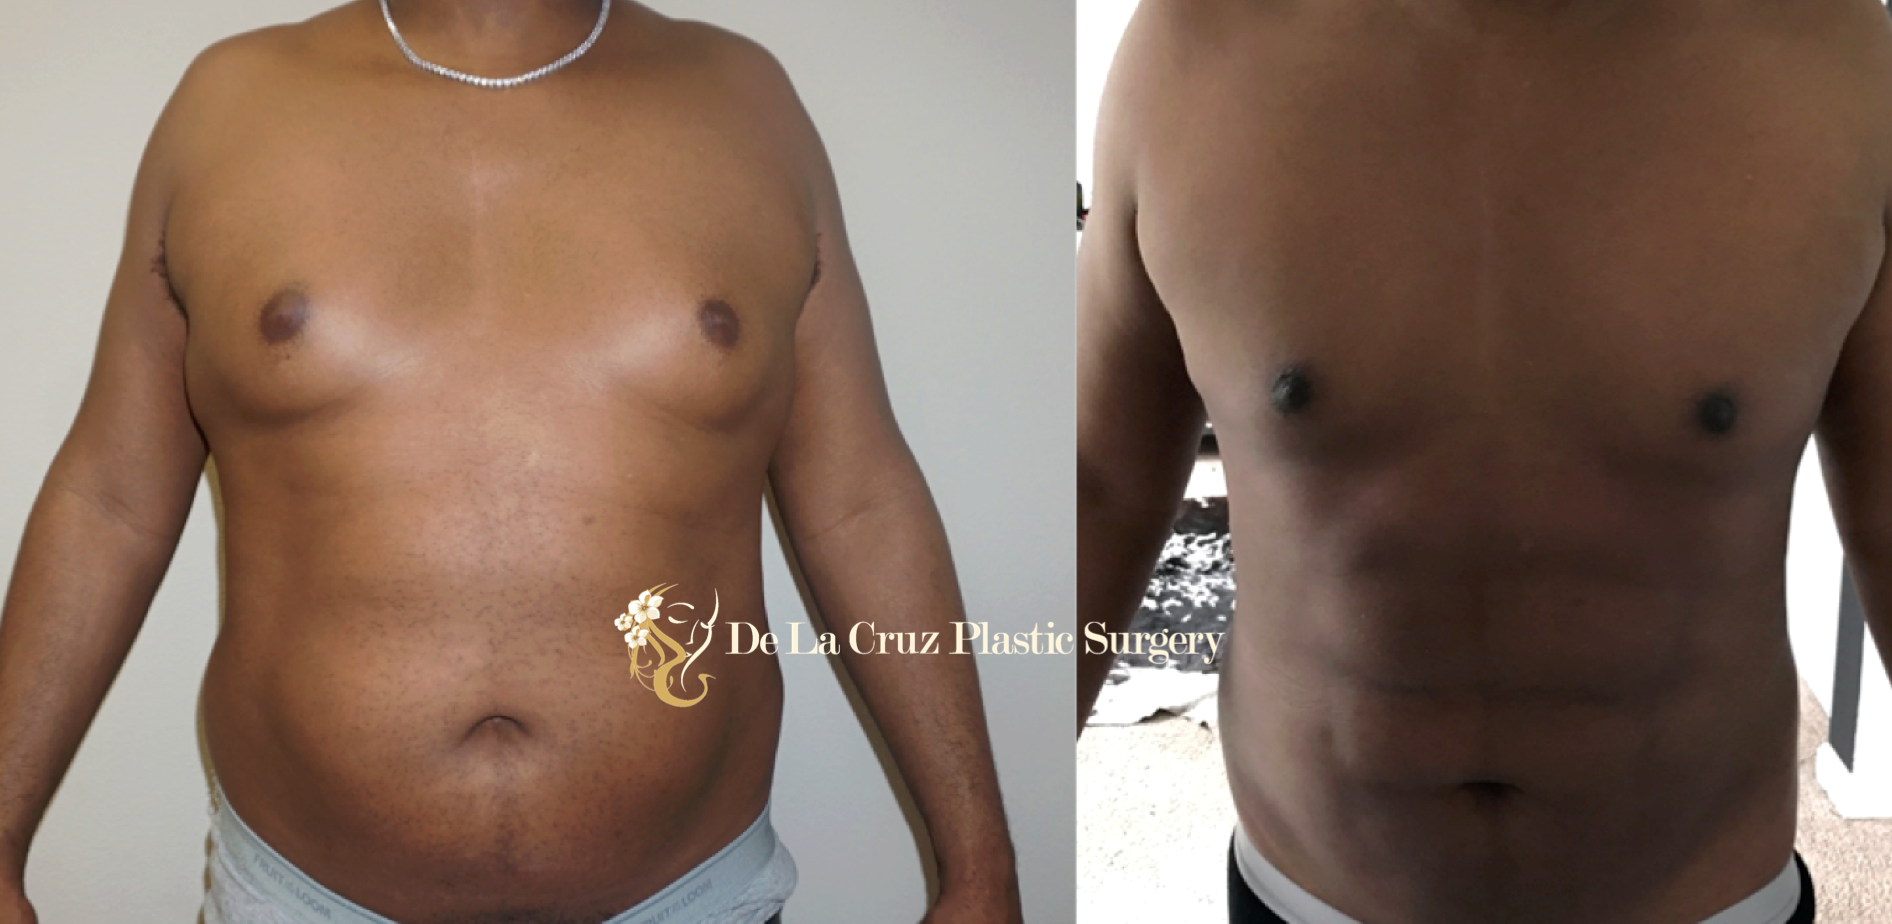 Before & After Photos of  VASER Liposuction  of the Breasts for treatment of Gynecomastia.  Note that the patient also underwent the 4D VASER Hi-Definition Liposuction.  Procedure performed by Dr. De La Cruz